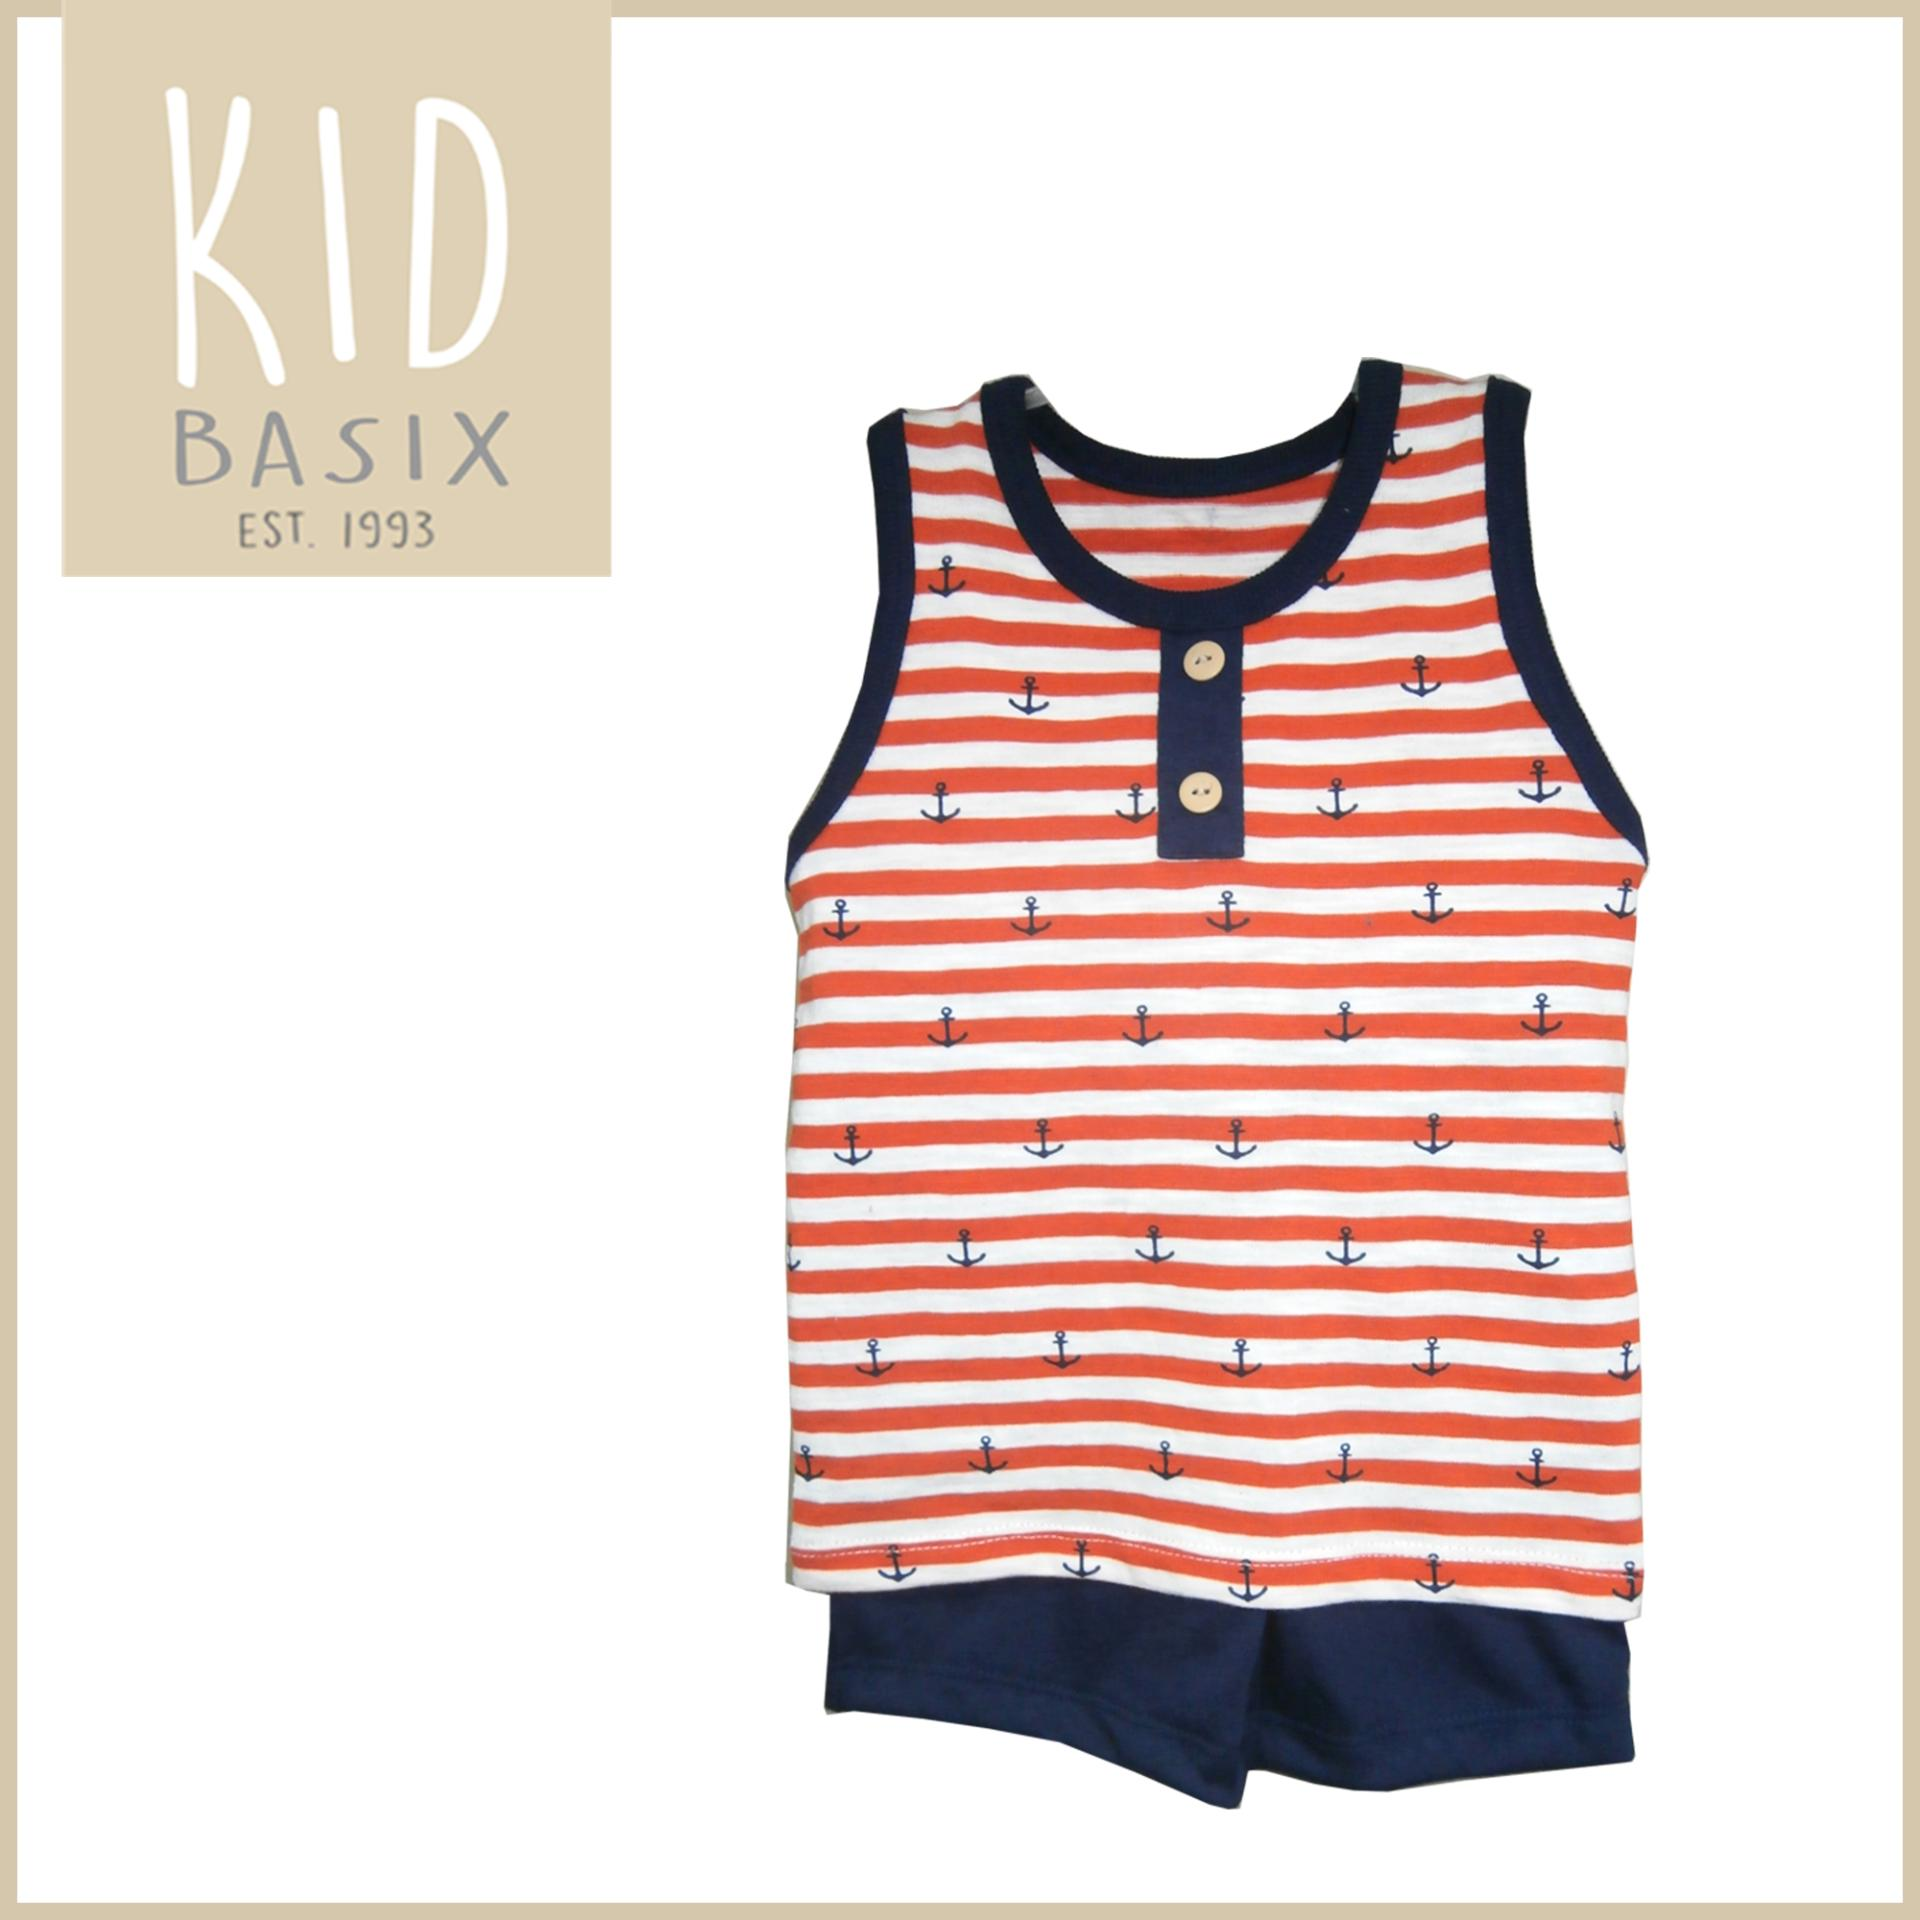 18a5b69e2 350042 items found in Clothing & Accessories. Kid Basix Anchor Orange  Stripes with Navy Shorts Boys Terno Set (Code - 4161)